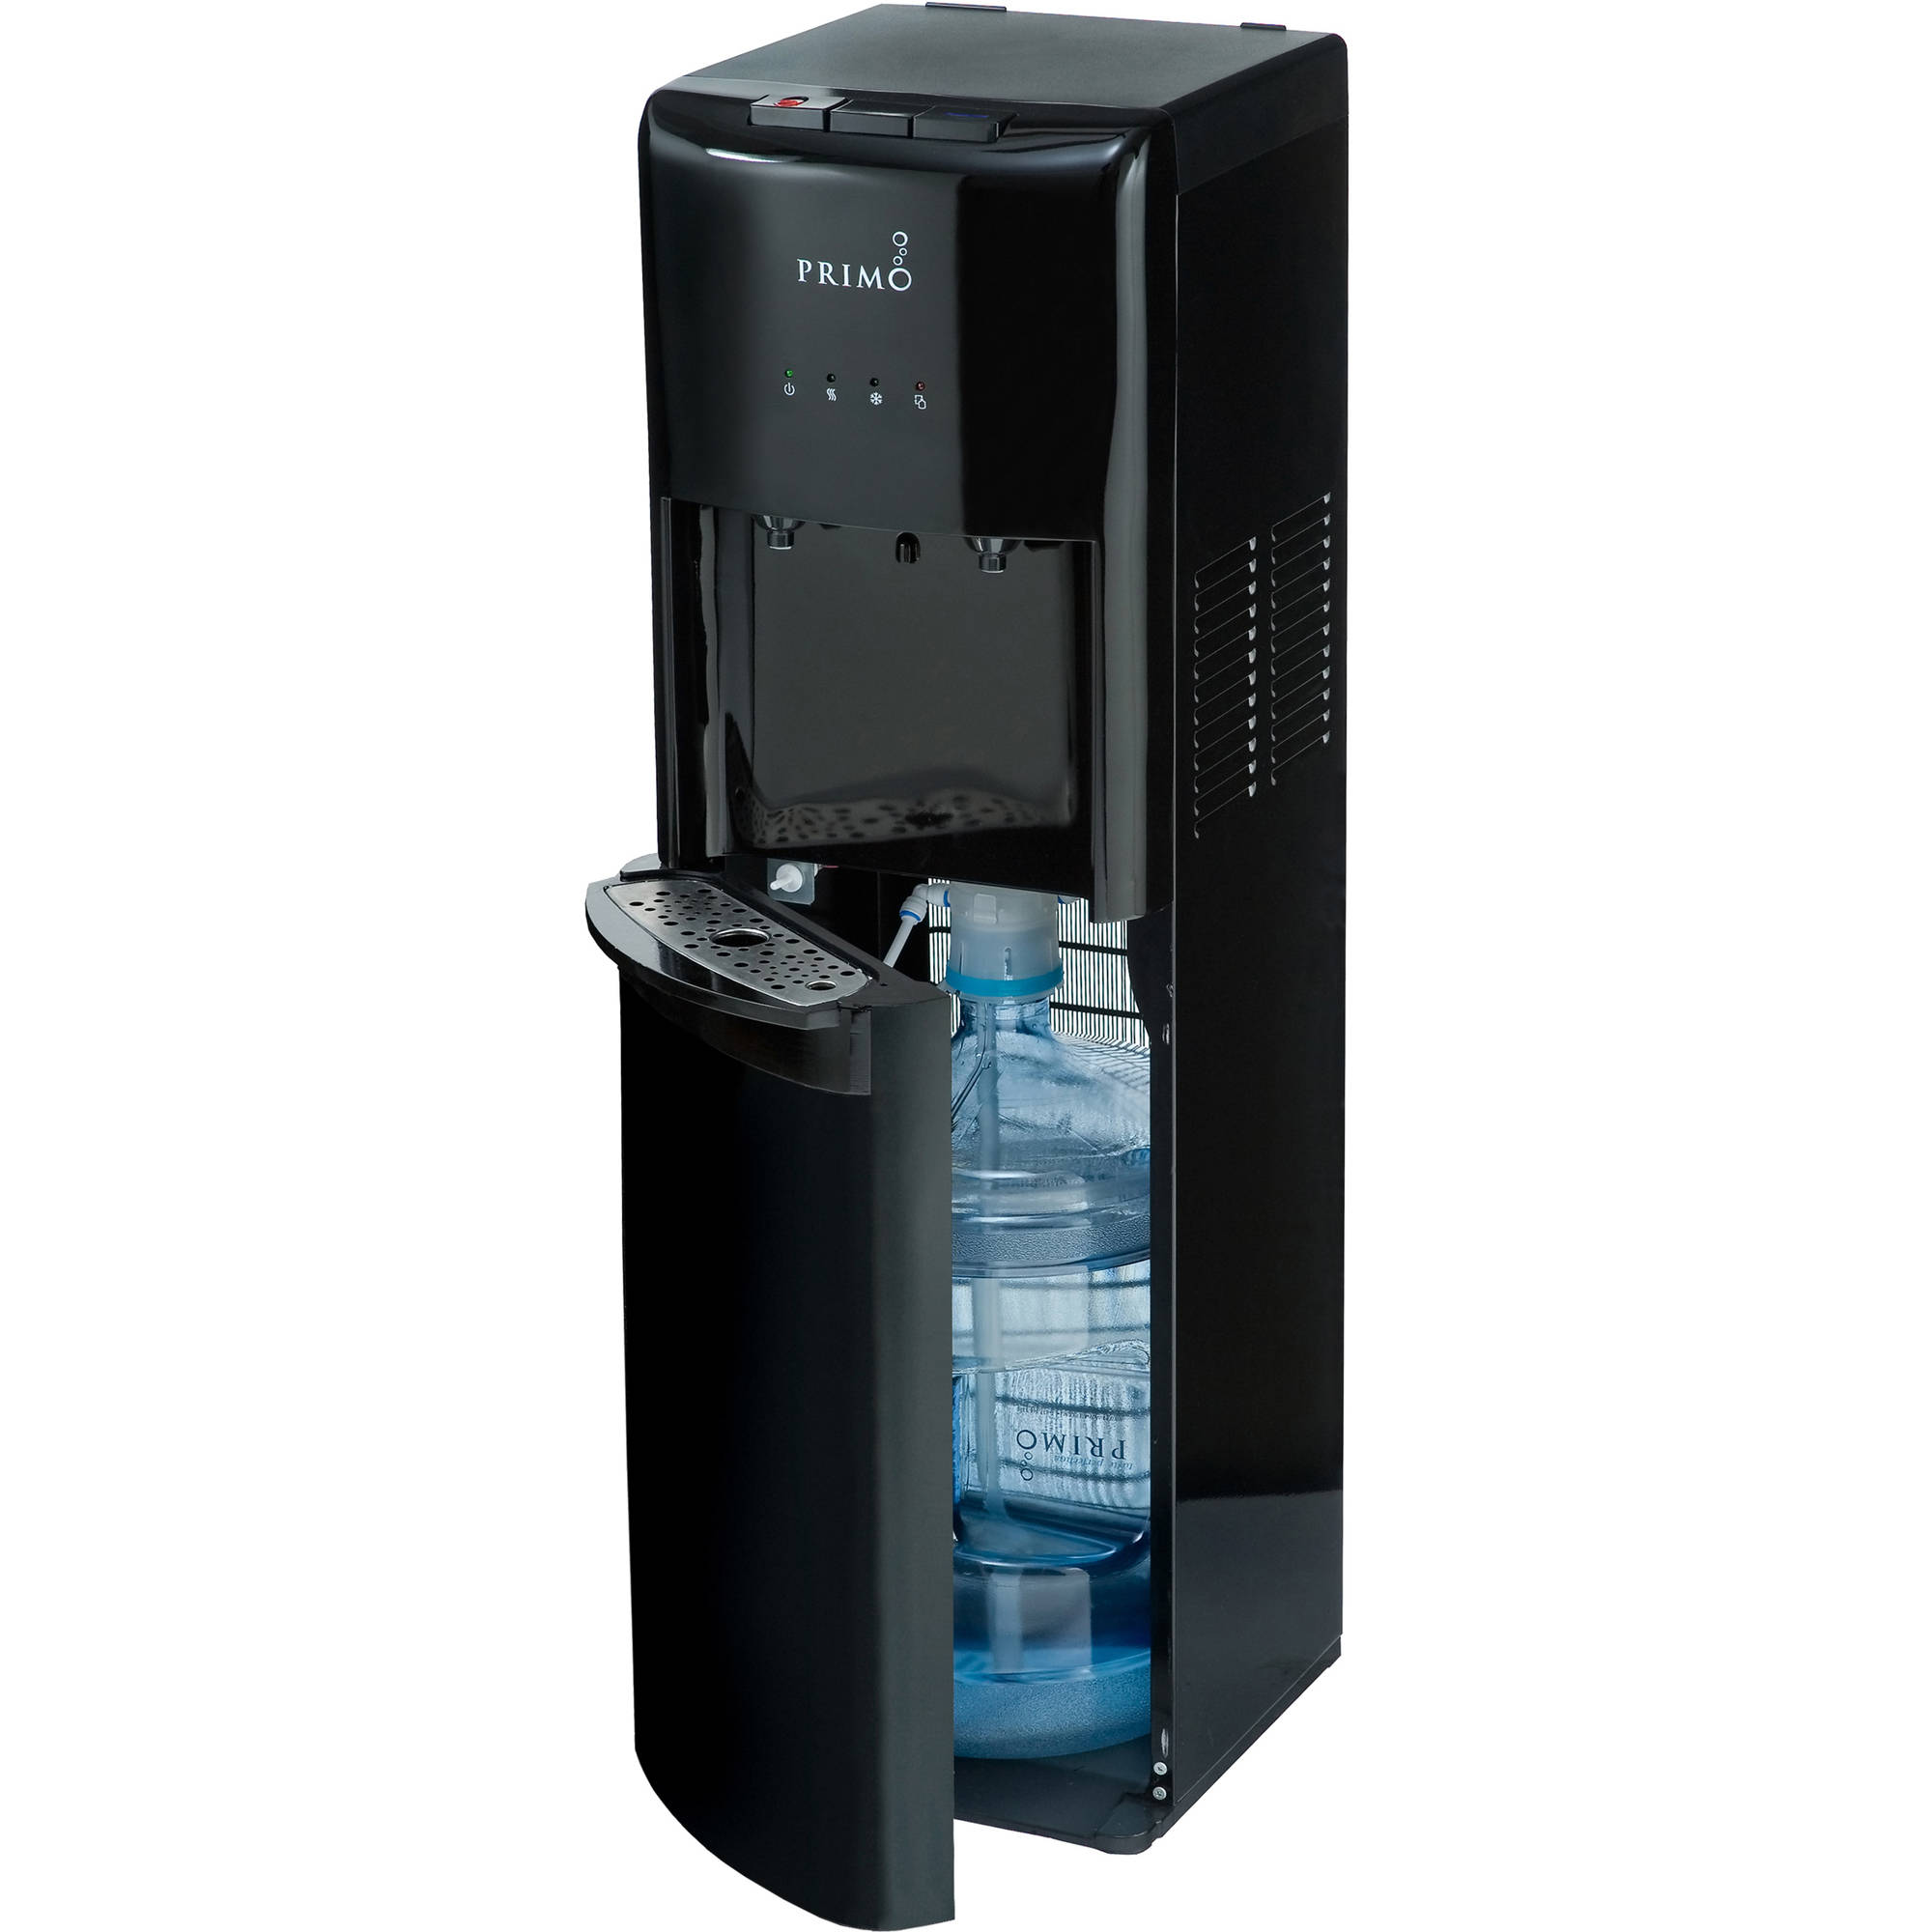 Primo Hot and Cold Water Dispenser